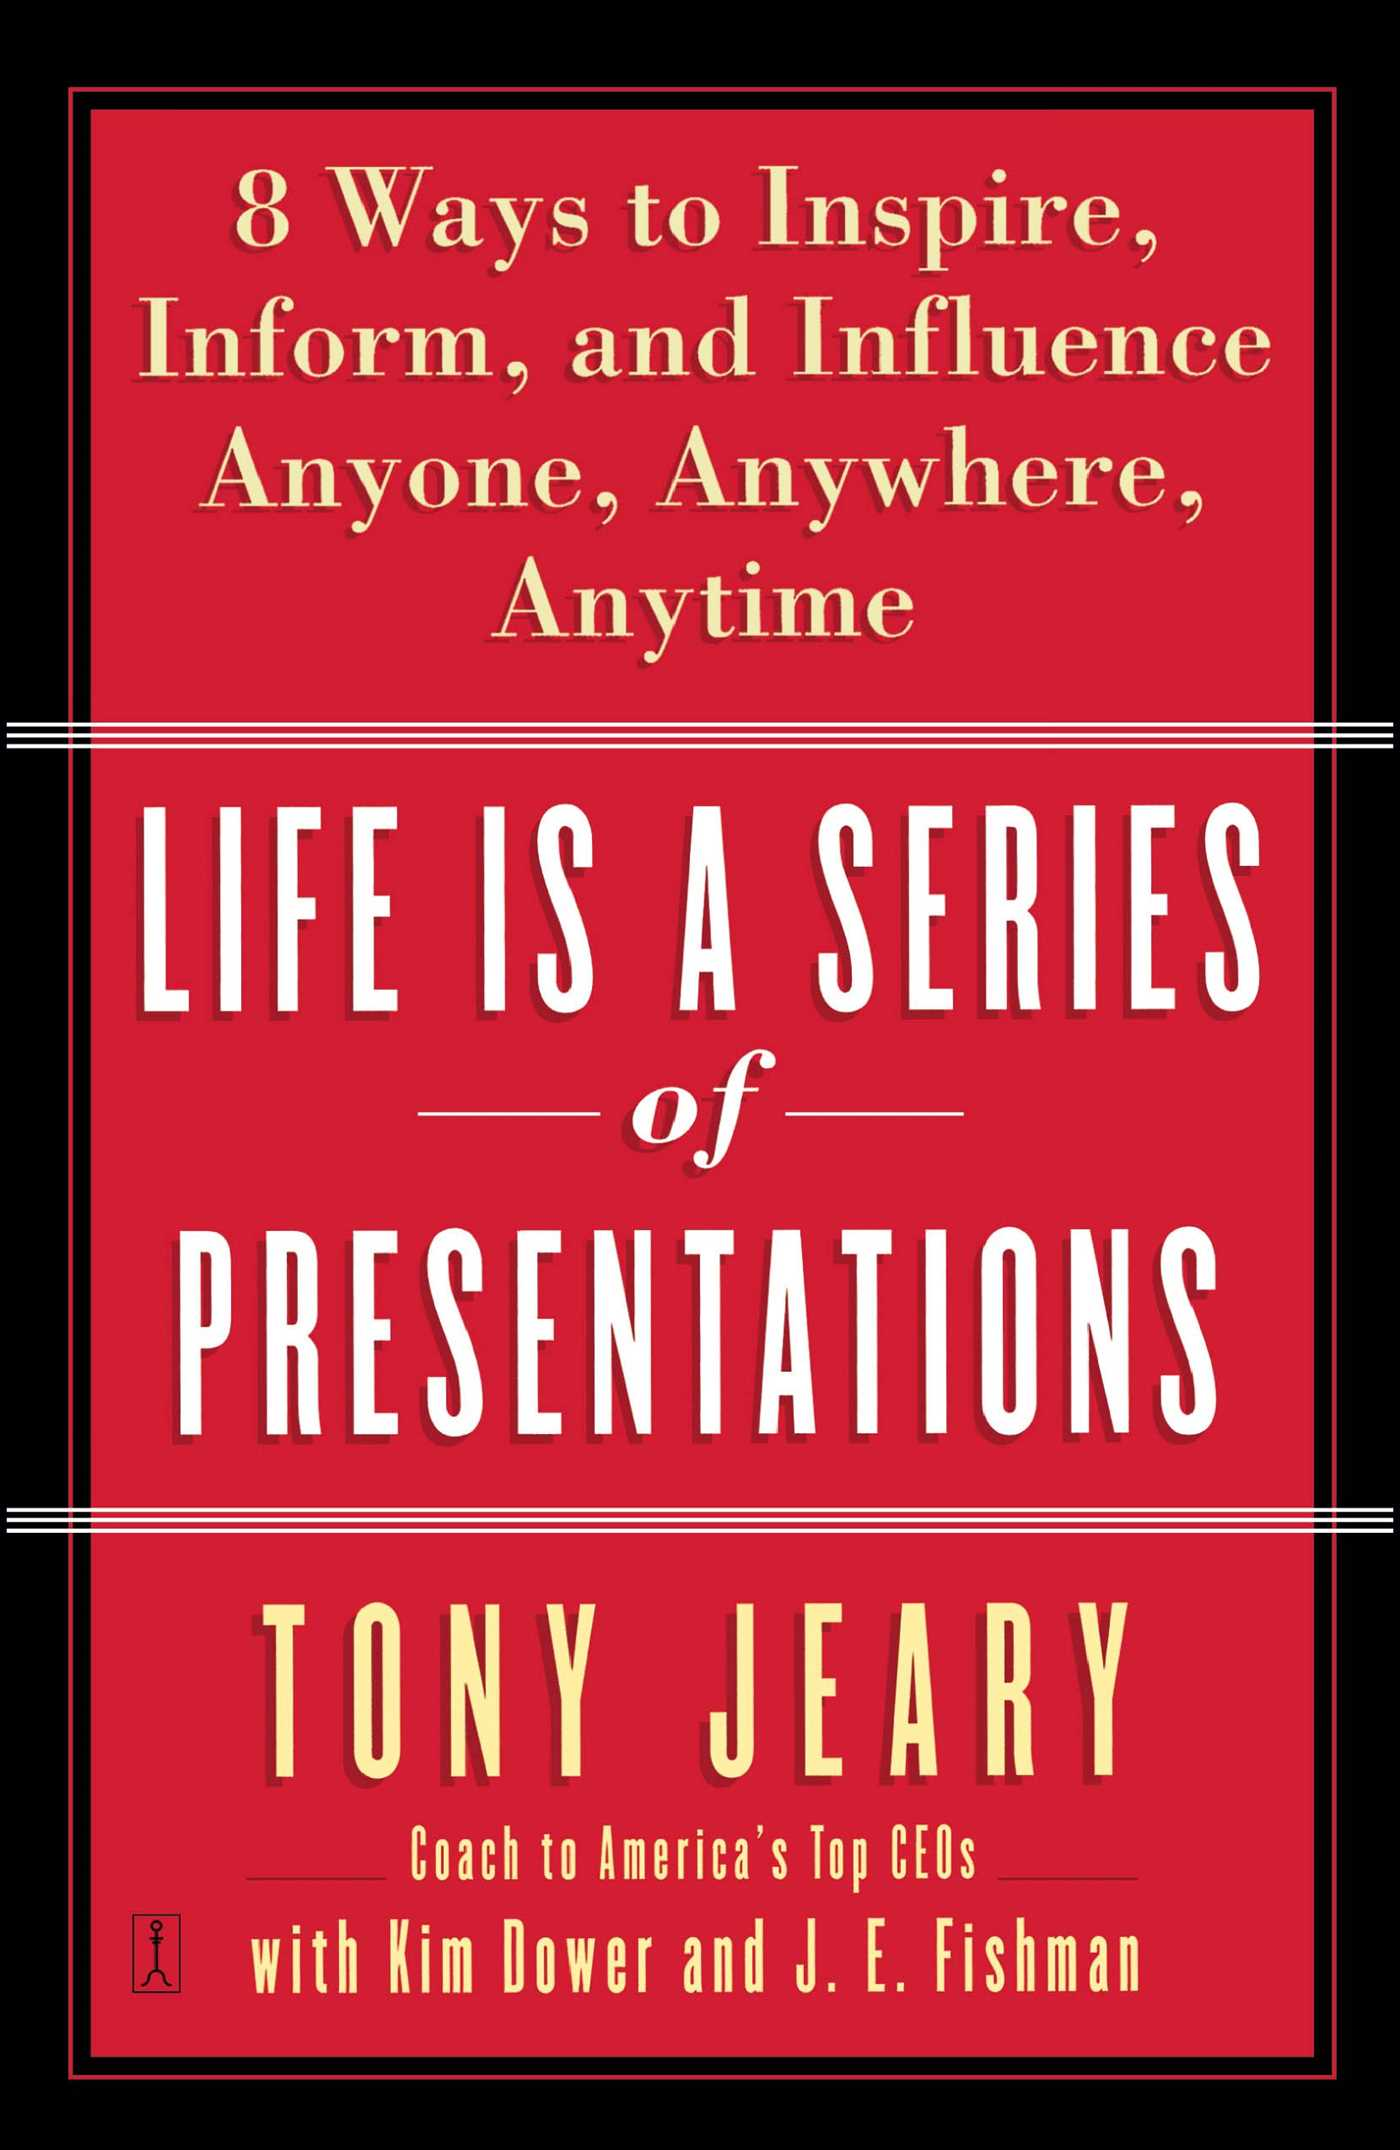 Life is a series of presentations 9780743269254 hr